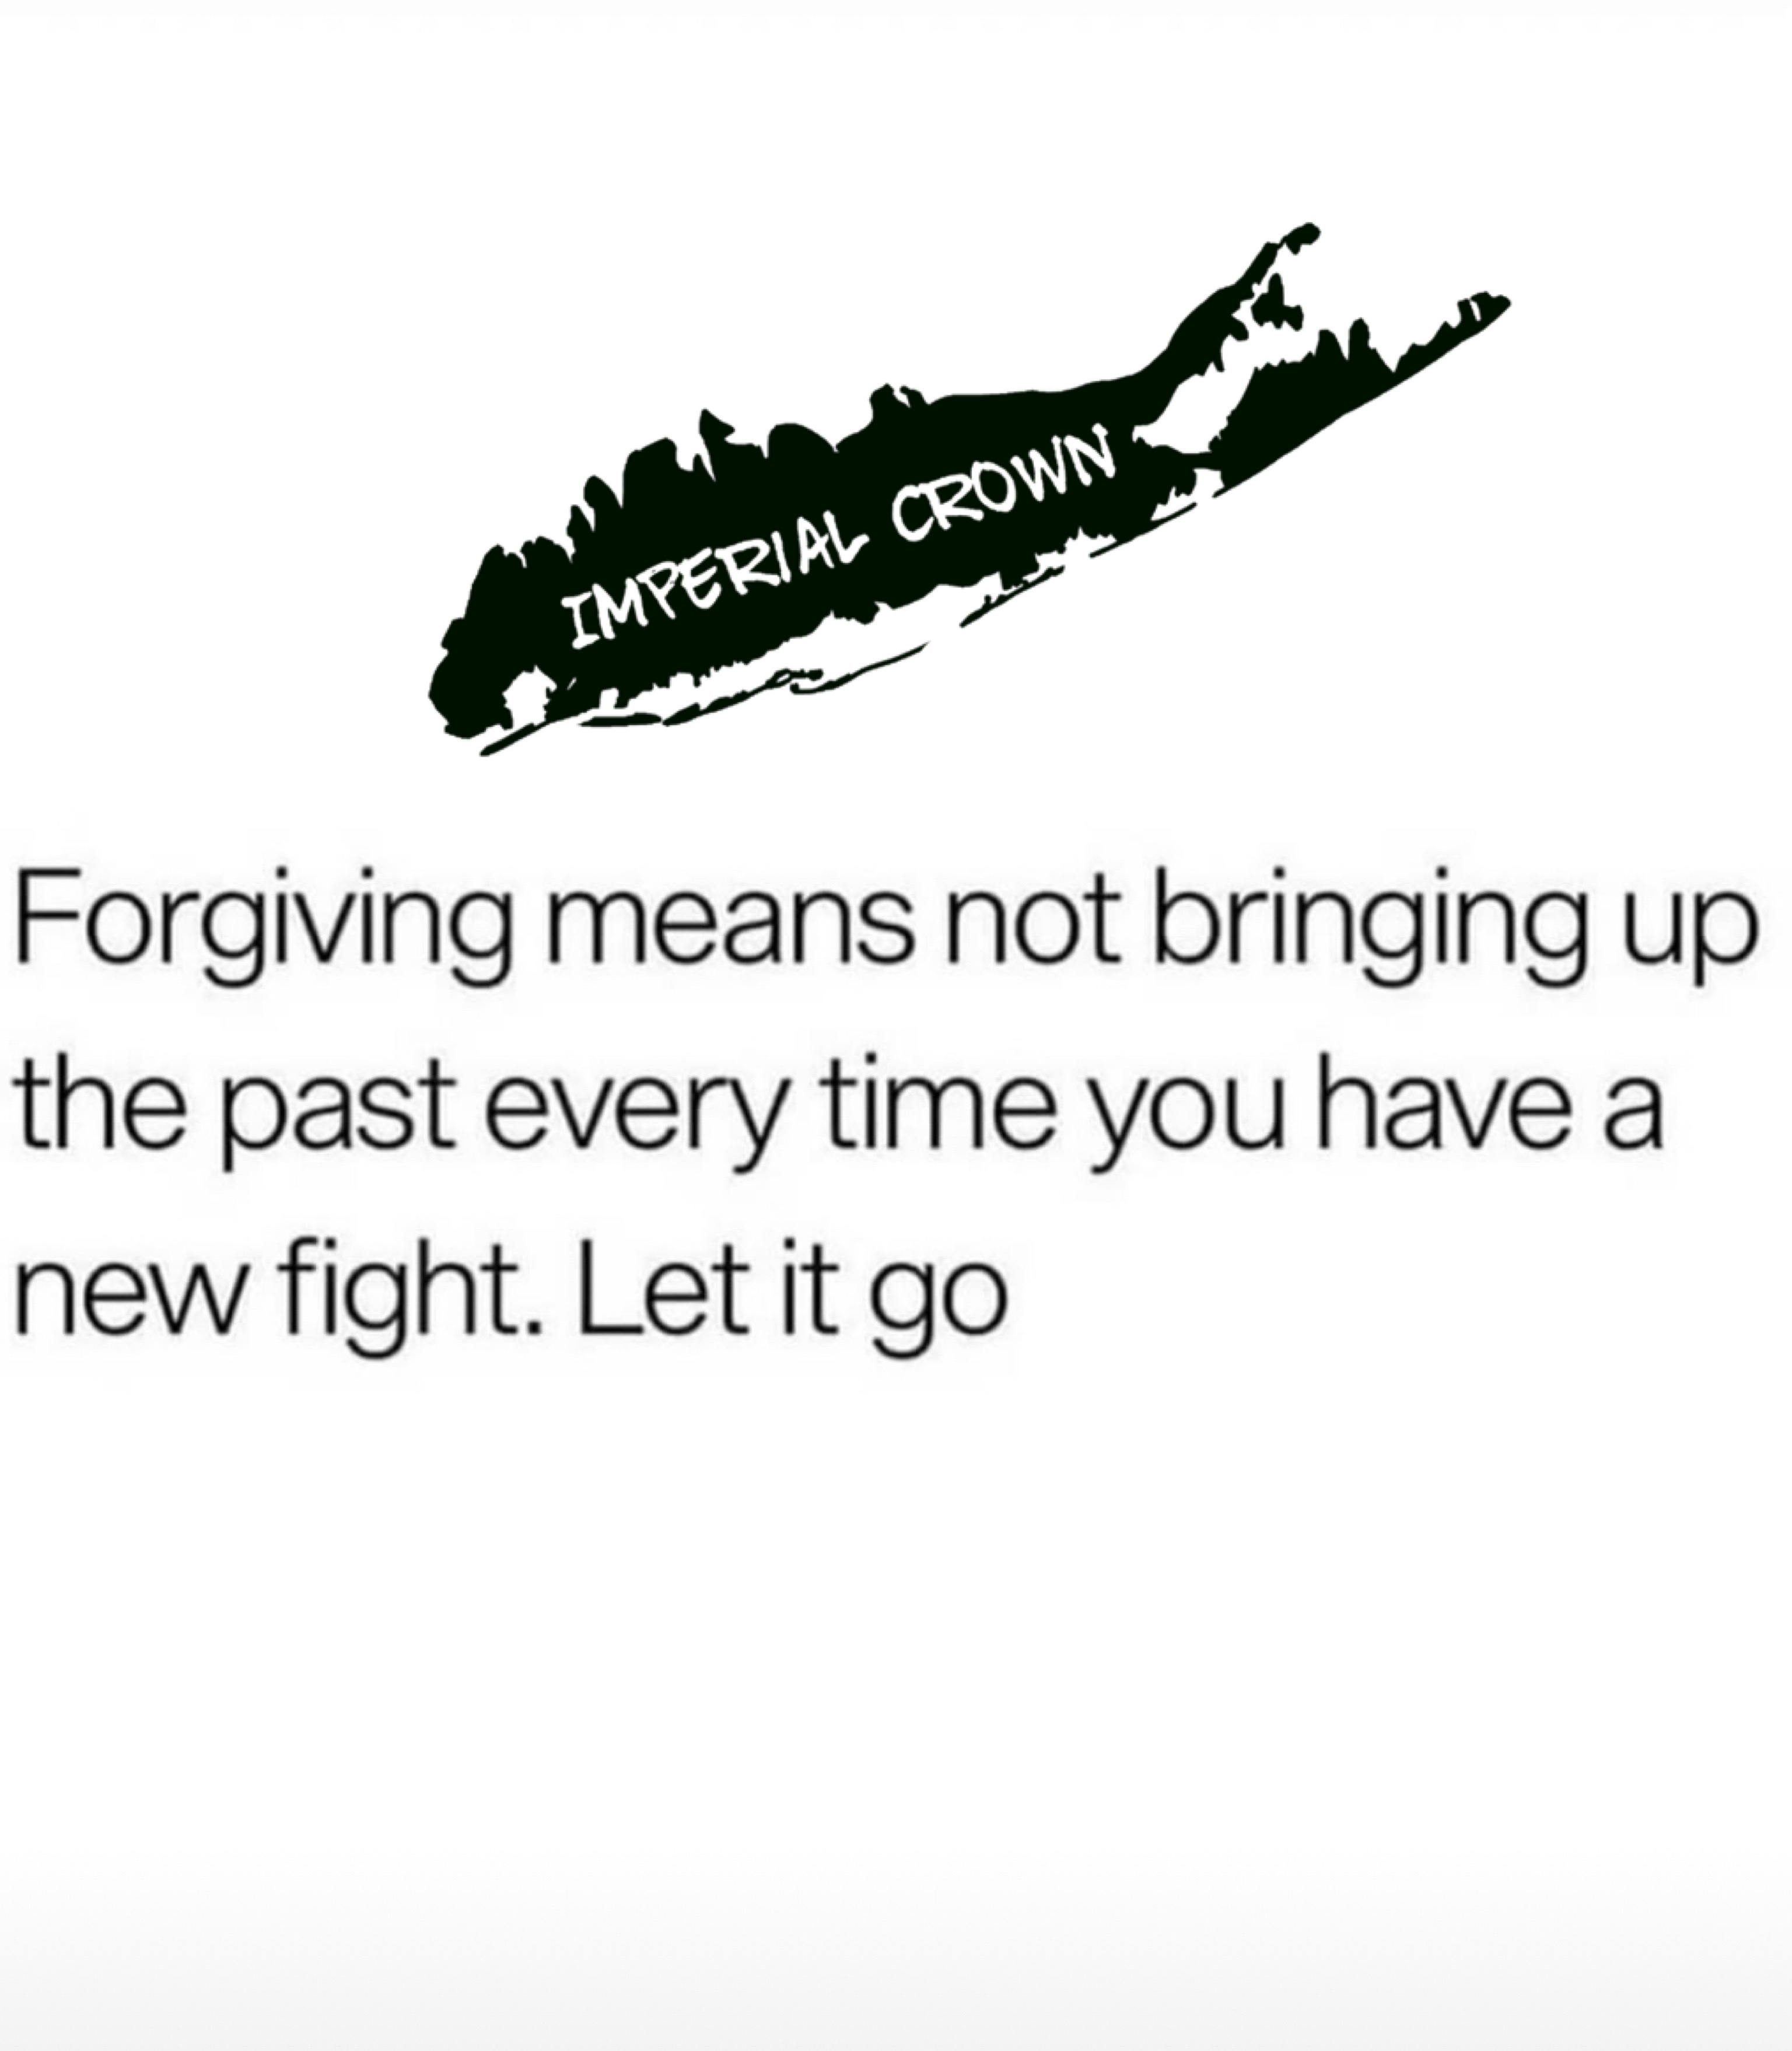 Forgiving means not bringing up the past every time you have a new fight